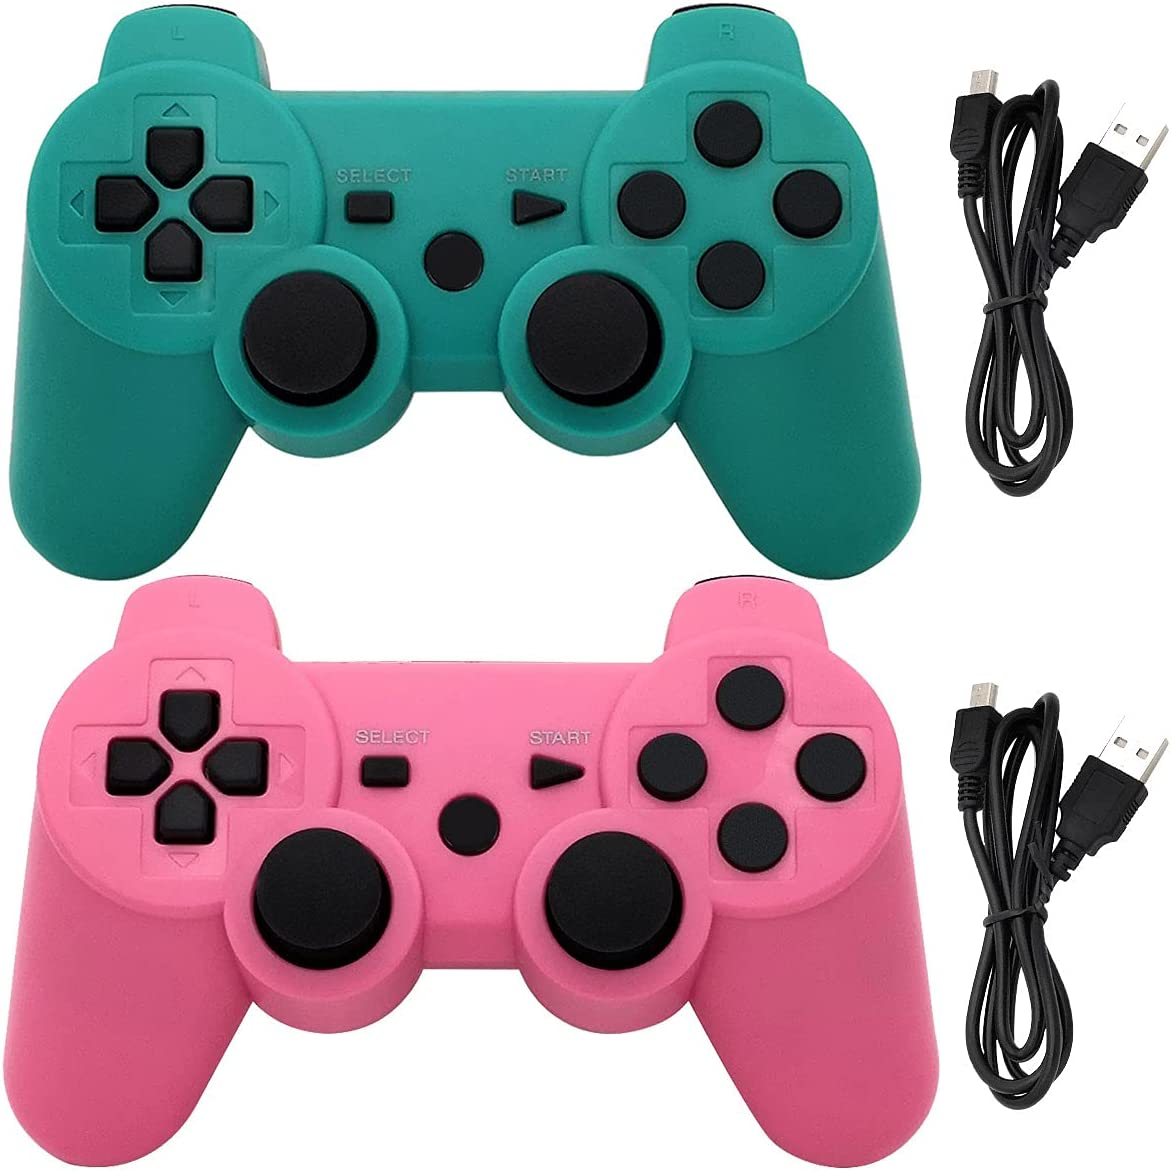 Sale SALE% OFF Ceozon PS3 Controller famous Wireless 3 Bluetoot Playstation